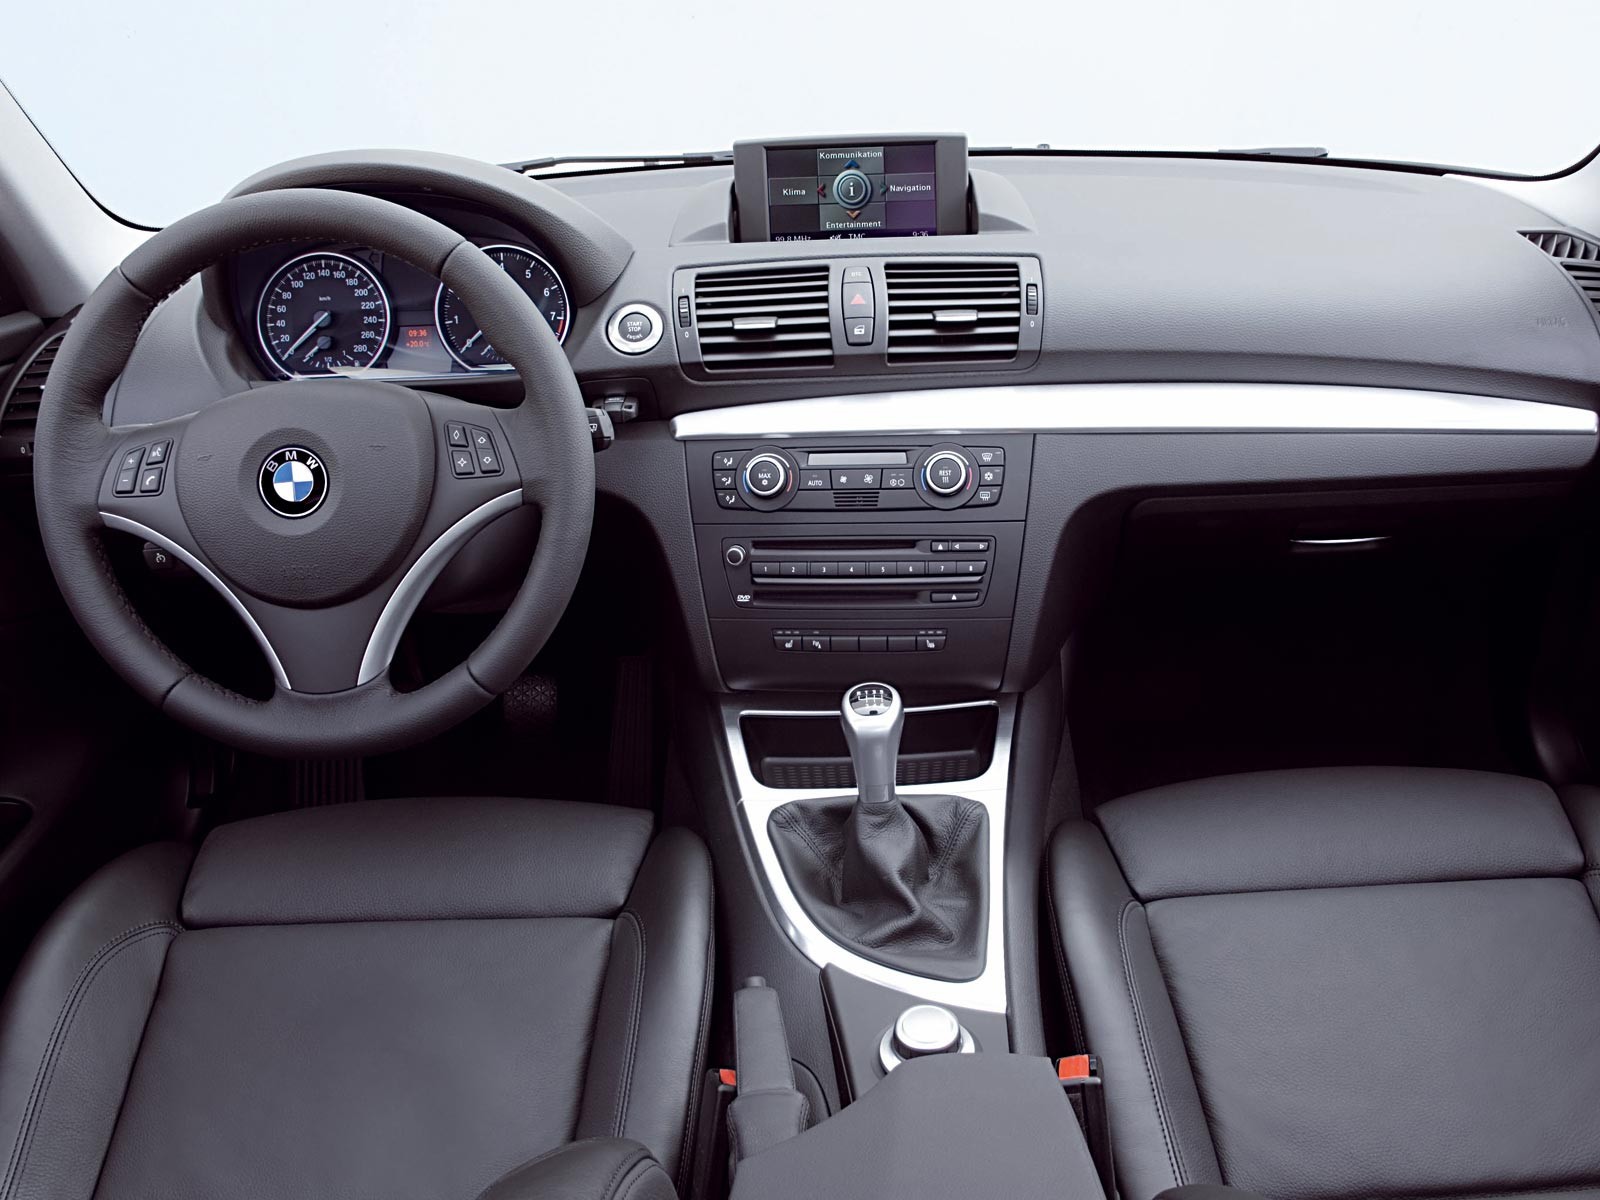 Bmw 116i 2006 Interieur 2007 – 2013 Bmw 1er Coupe (e82) | Autoguru-katalog.at